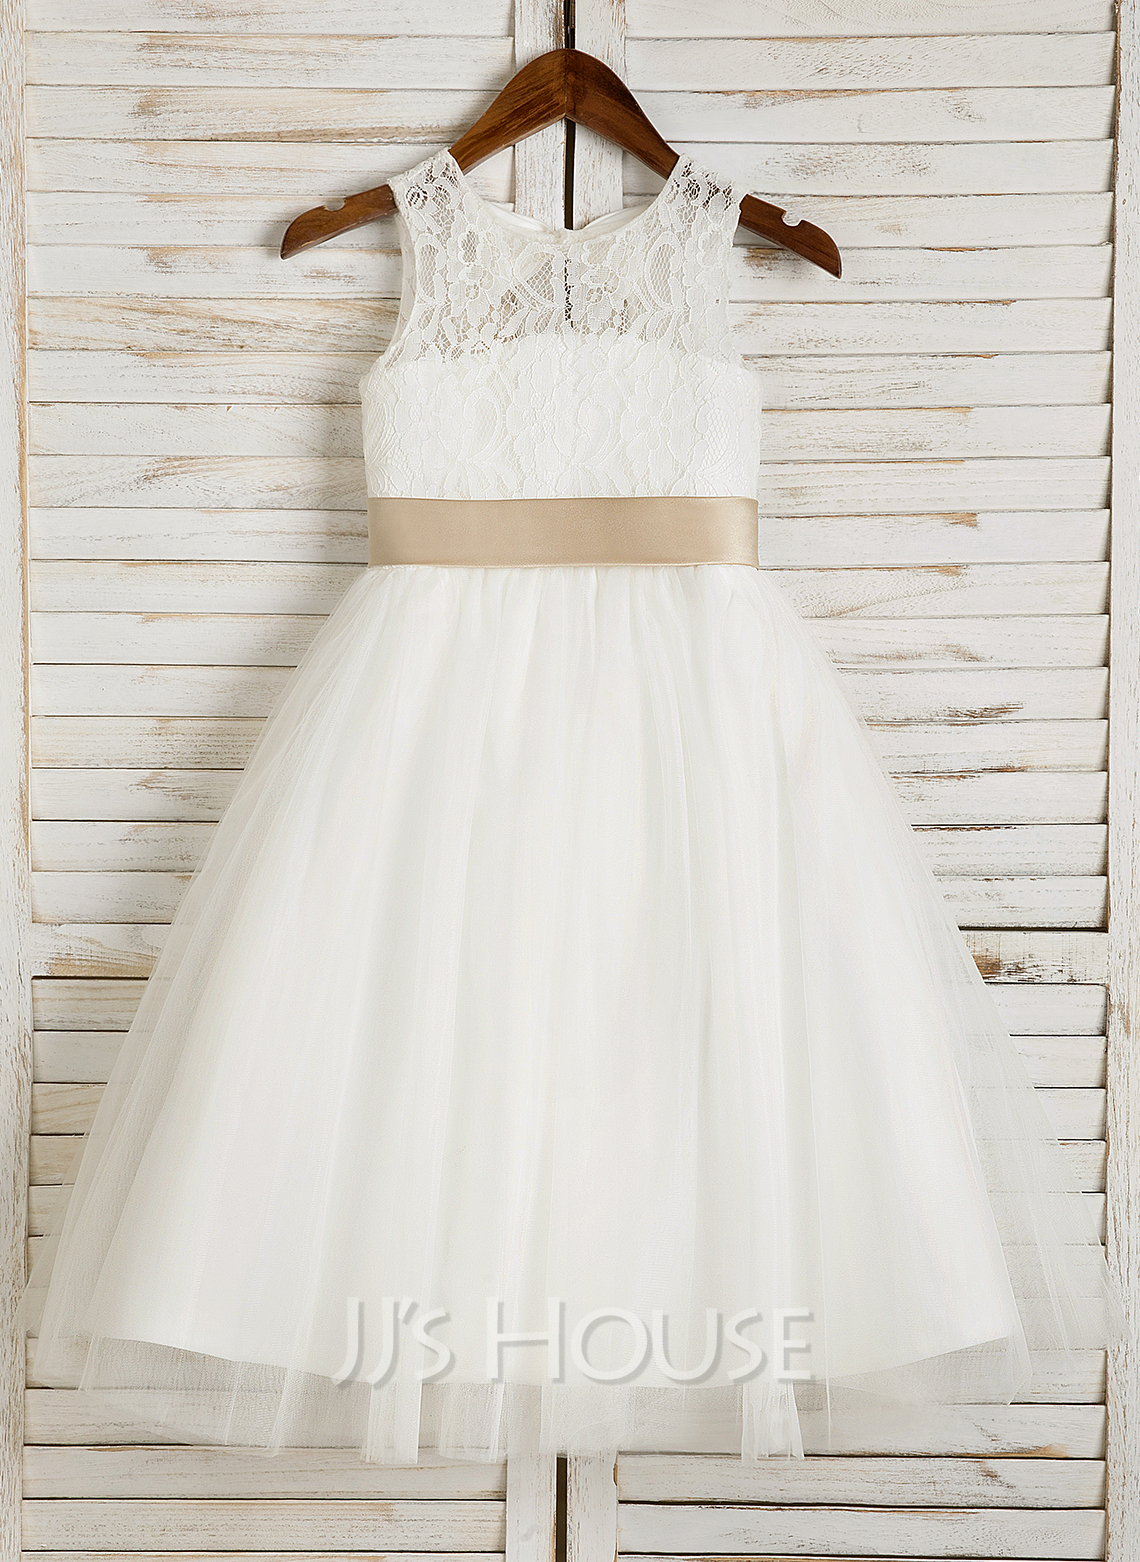 3850e05bcd15 A-Line/Princess Tea-length Flower Girl Dress - Tulle/Lace Sleeveless.  Loading zoom